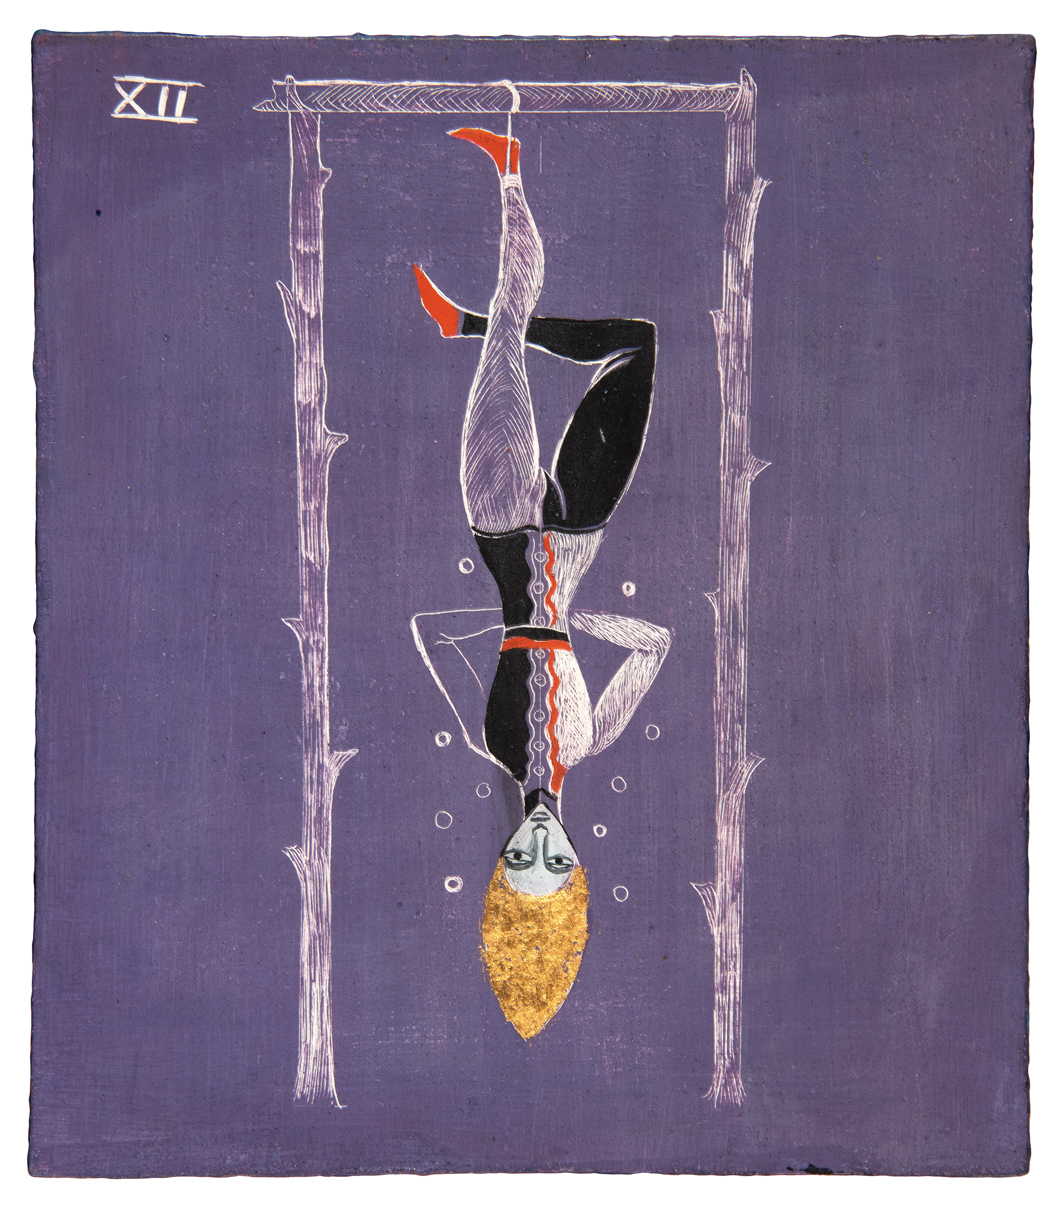 Leonora Carrington, The Hanged Man, ca. 1955, oil and gold leaf on board, 6 1⁄4 × 5 1⁄2